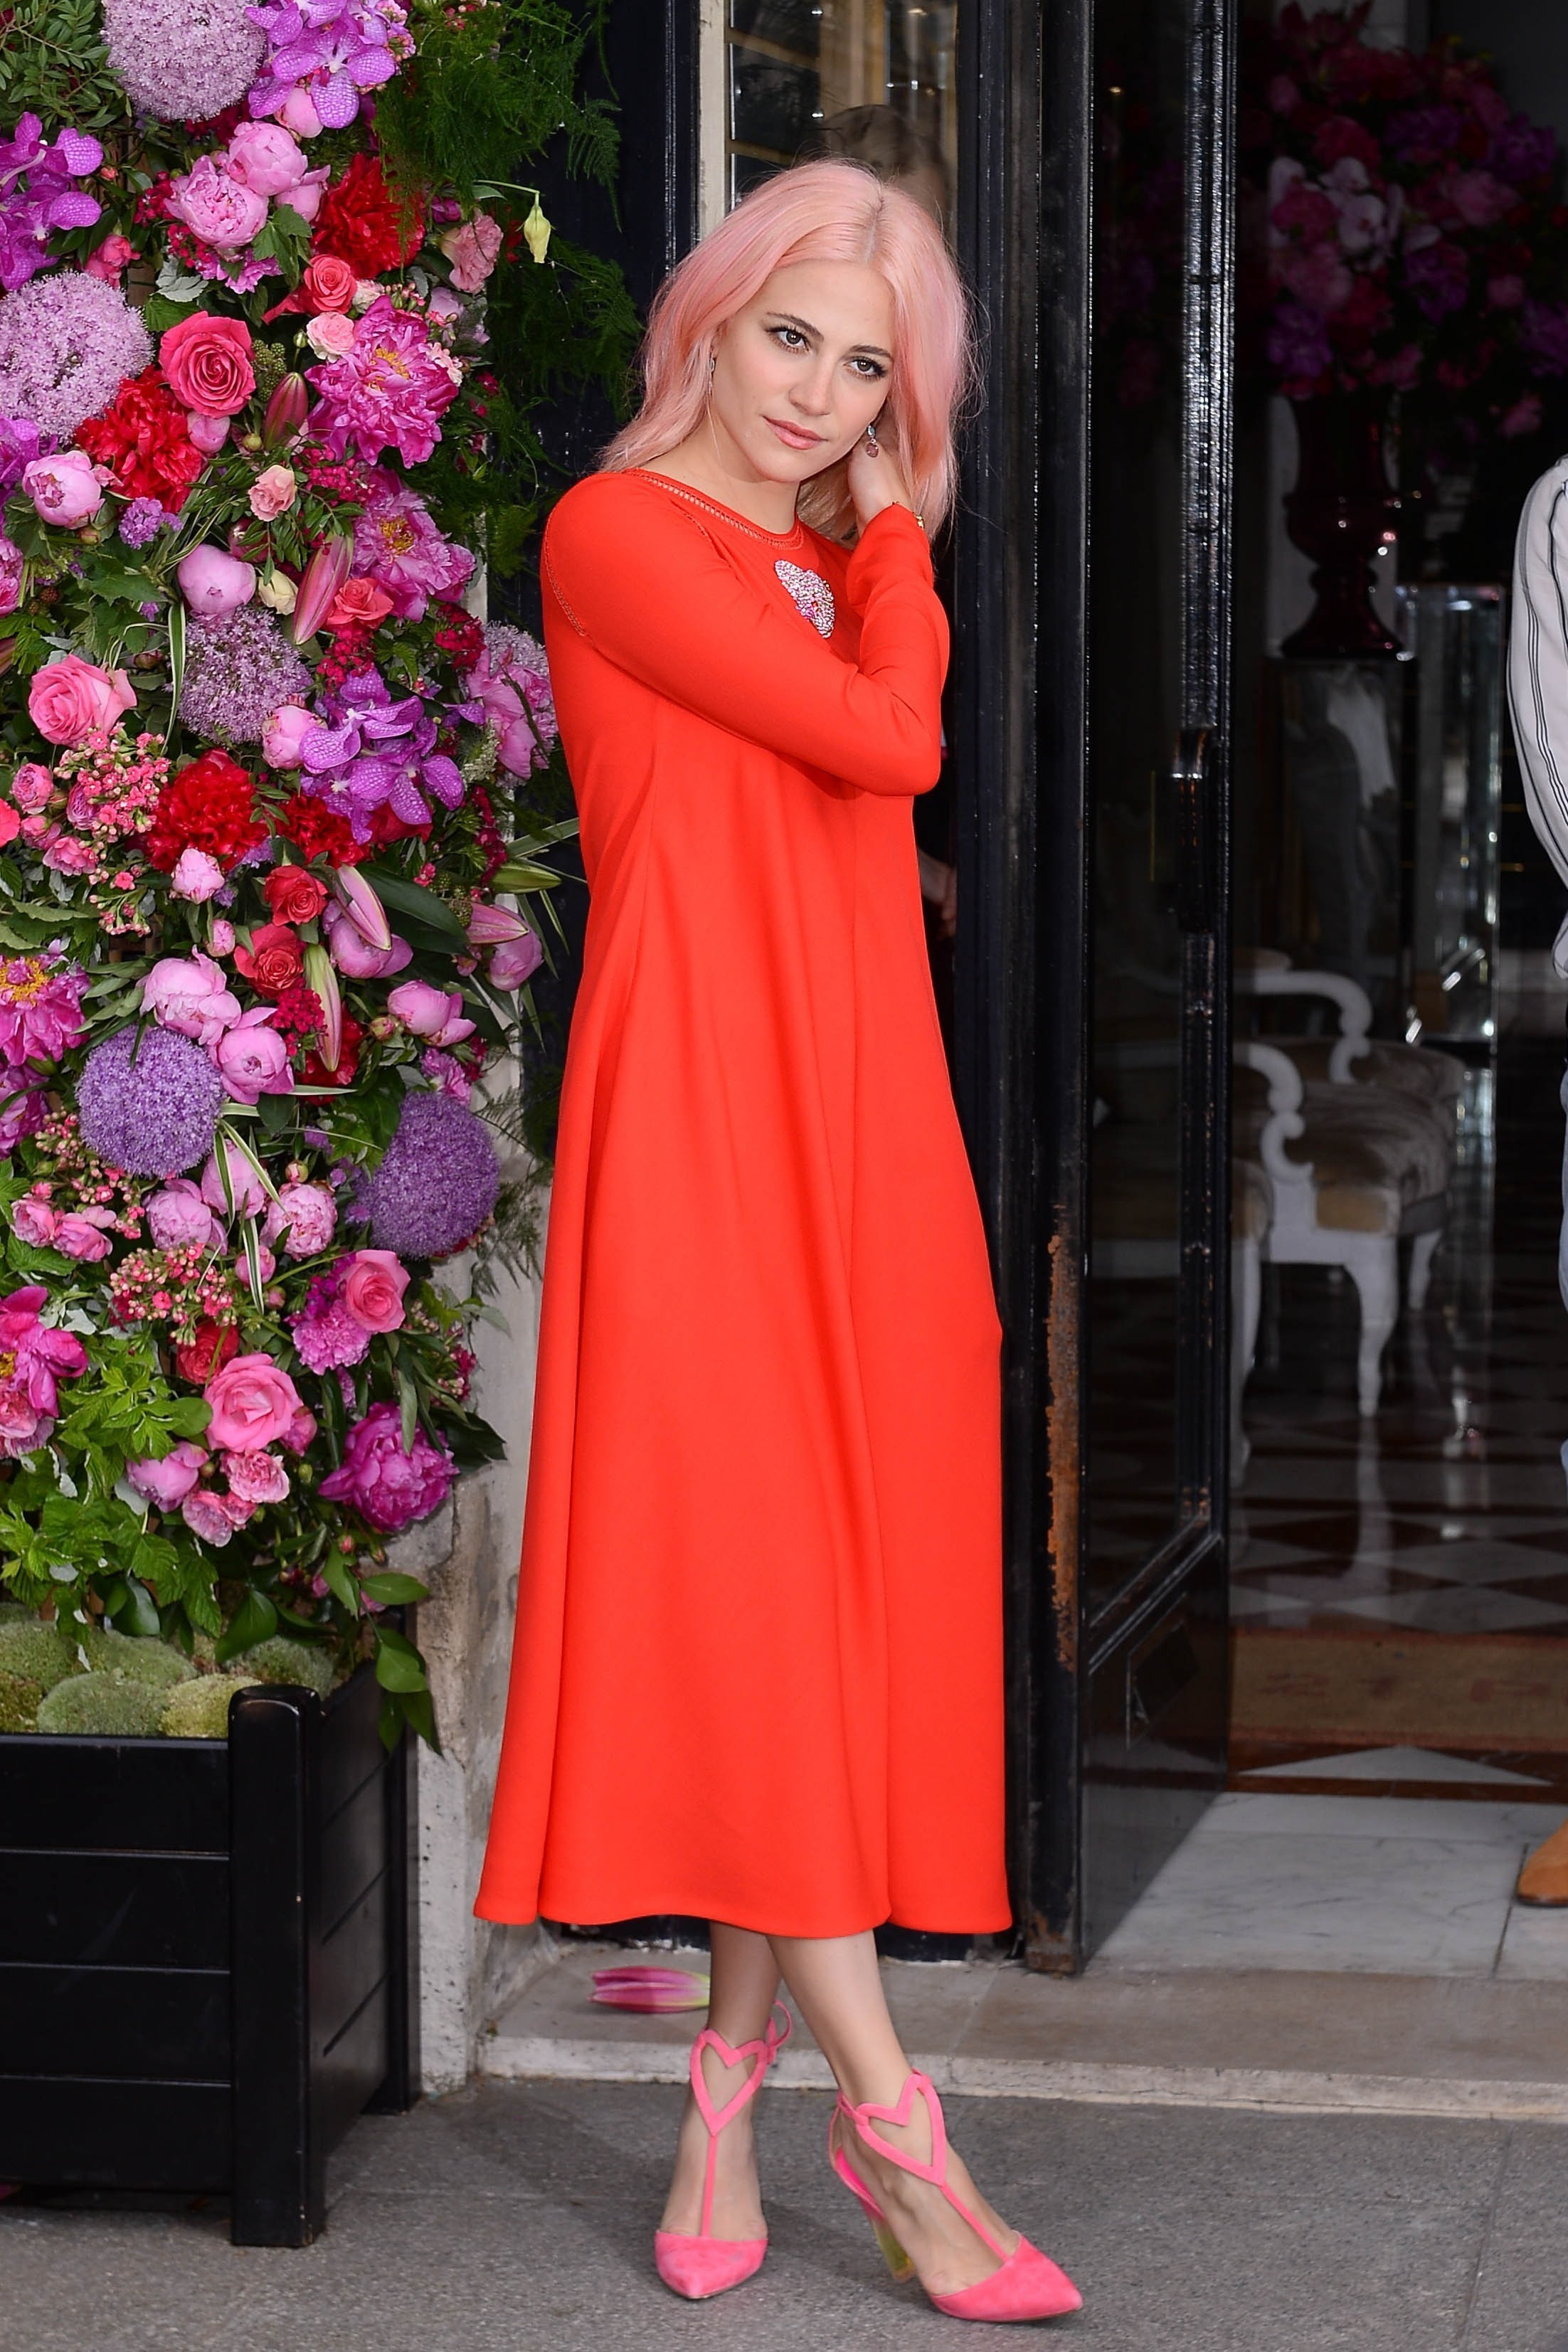 Celebrities are seen arriving at the Schiaparelli Fashion Show during Paris Fashion Week held in Paris, France. <P> Pictured: Pixie Lott <B>Ref: SPL1531901  030717  </B><BR/> Picture by: Splash News<BR/> </P><P> <B>Splash News and Pictures</B><BR/> Los Angeles:310-821-2666<BR/> New York:212-619-2666<BR/> London:870-934-2666<BR/> <span id=